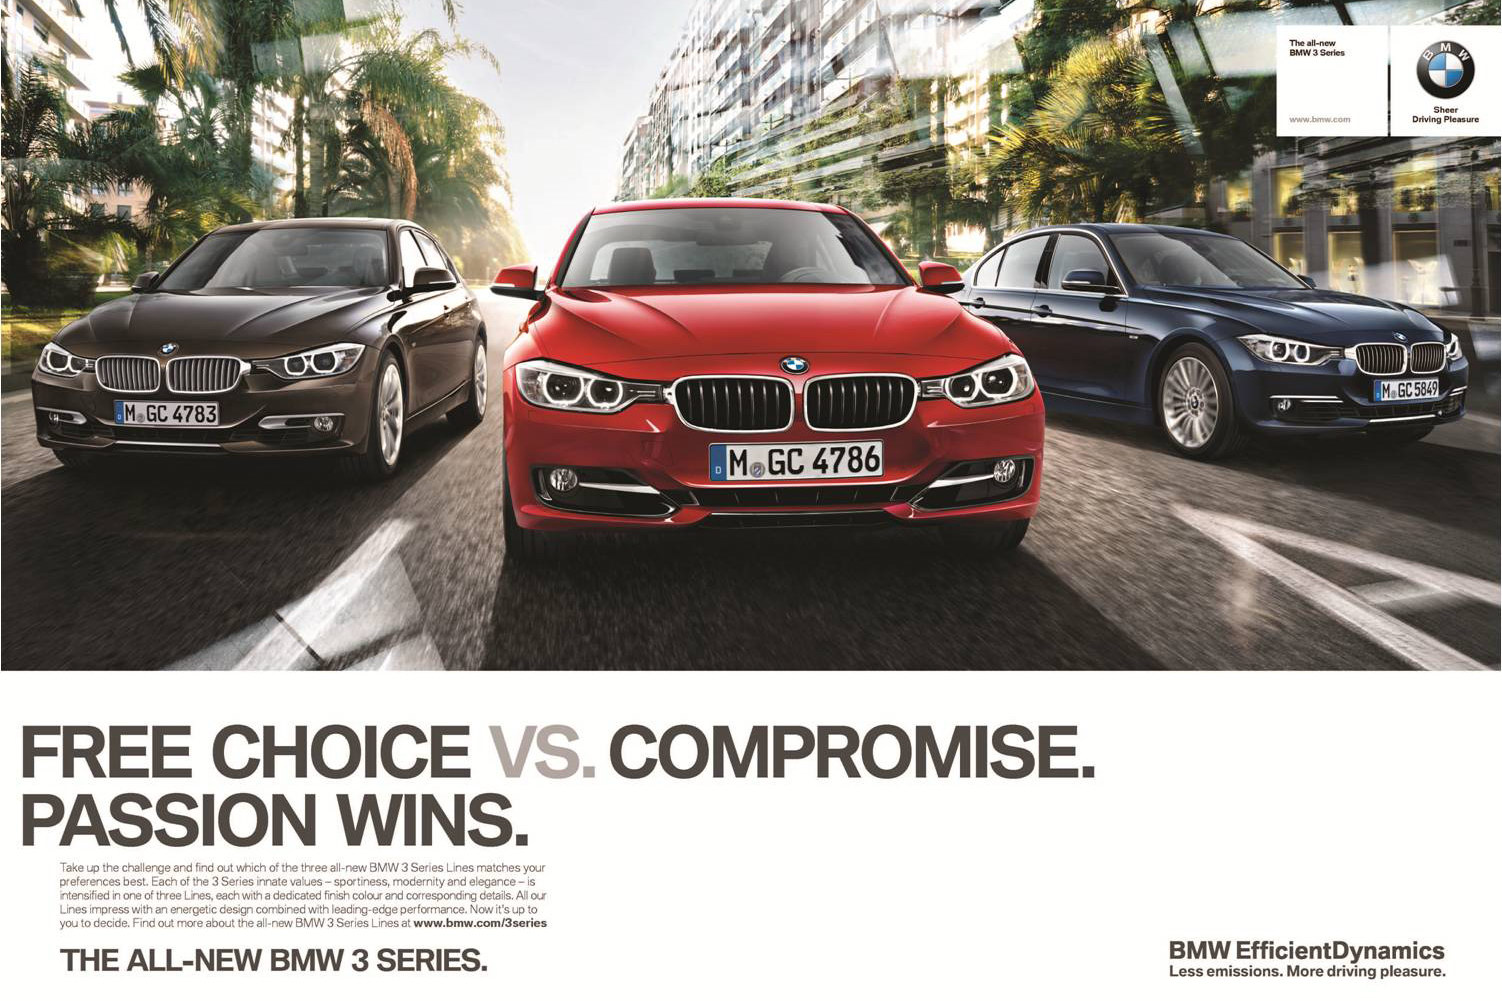 2012 Bmw 3 Series F30 Marketing Campaign Passion Wins Autoevolution